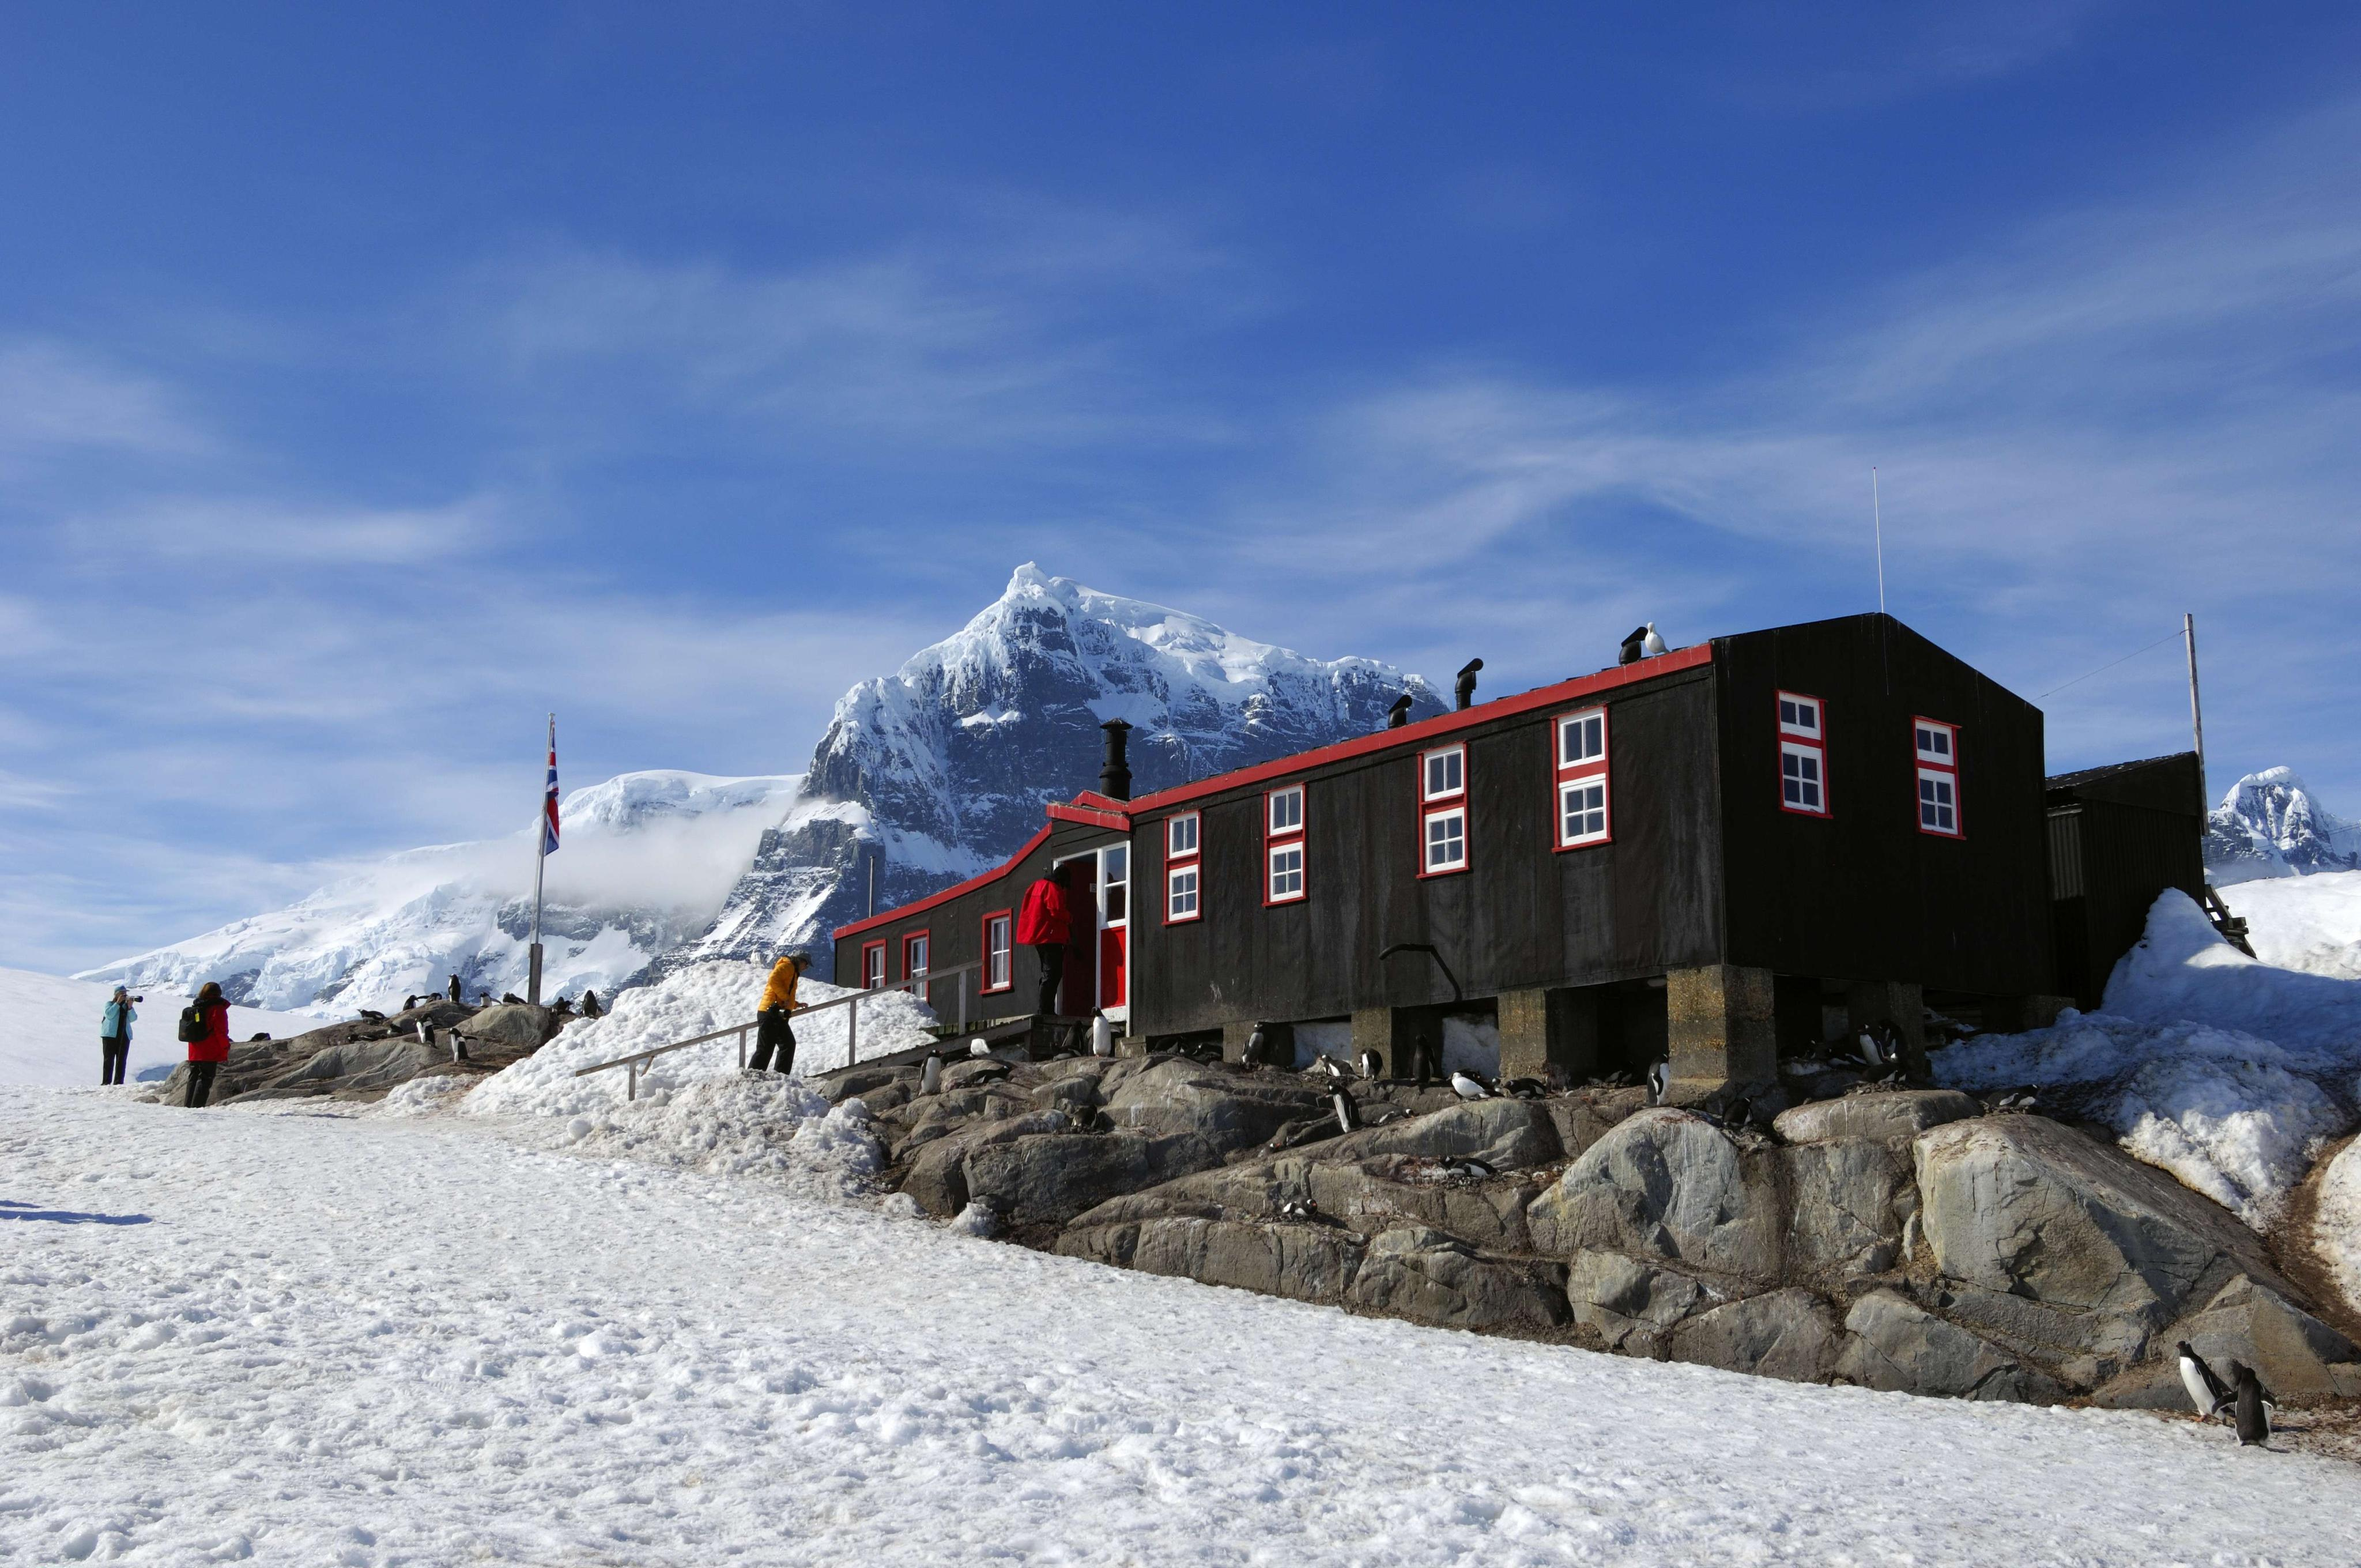 Antarctica post office seeking job applicants who can for Port lockroy